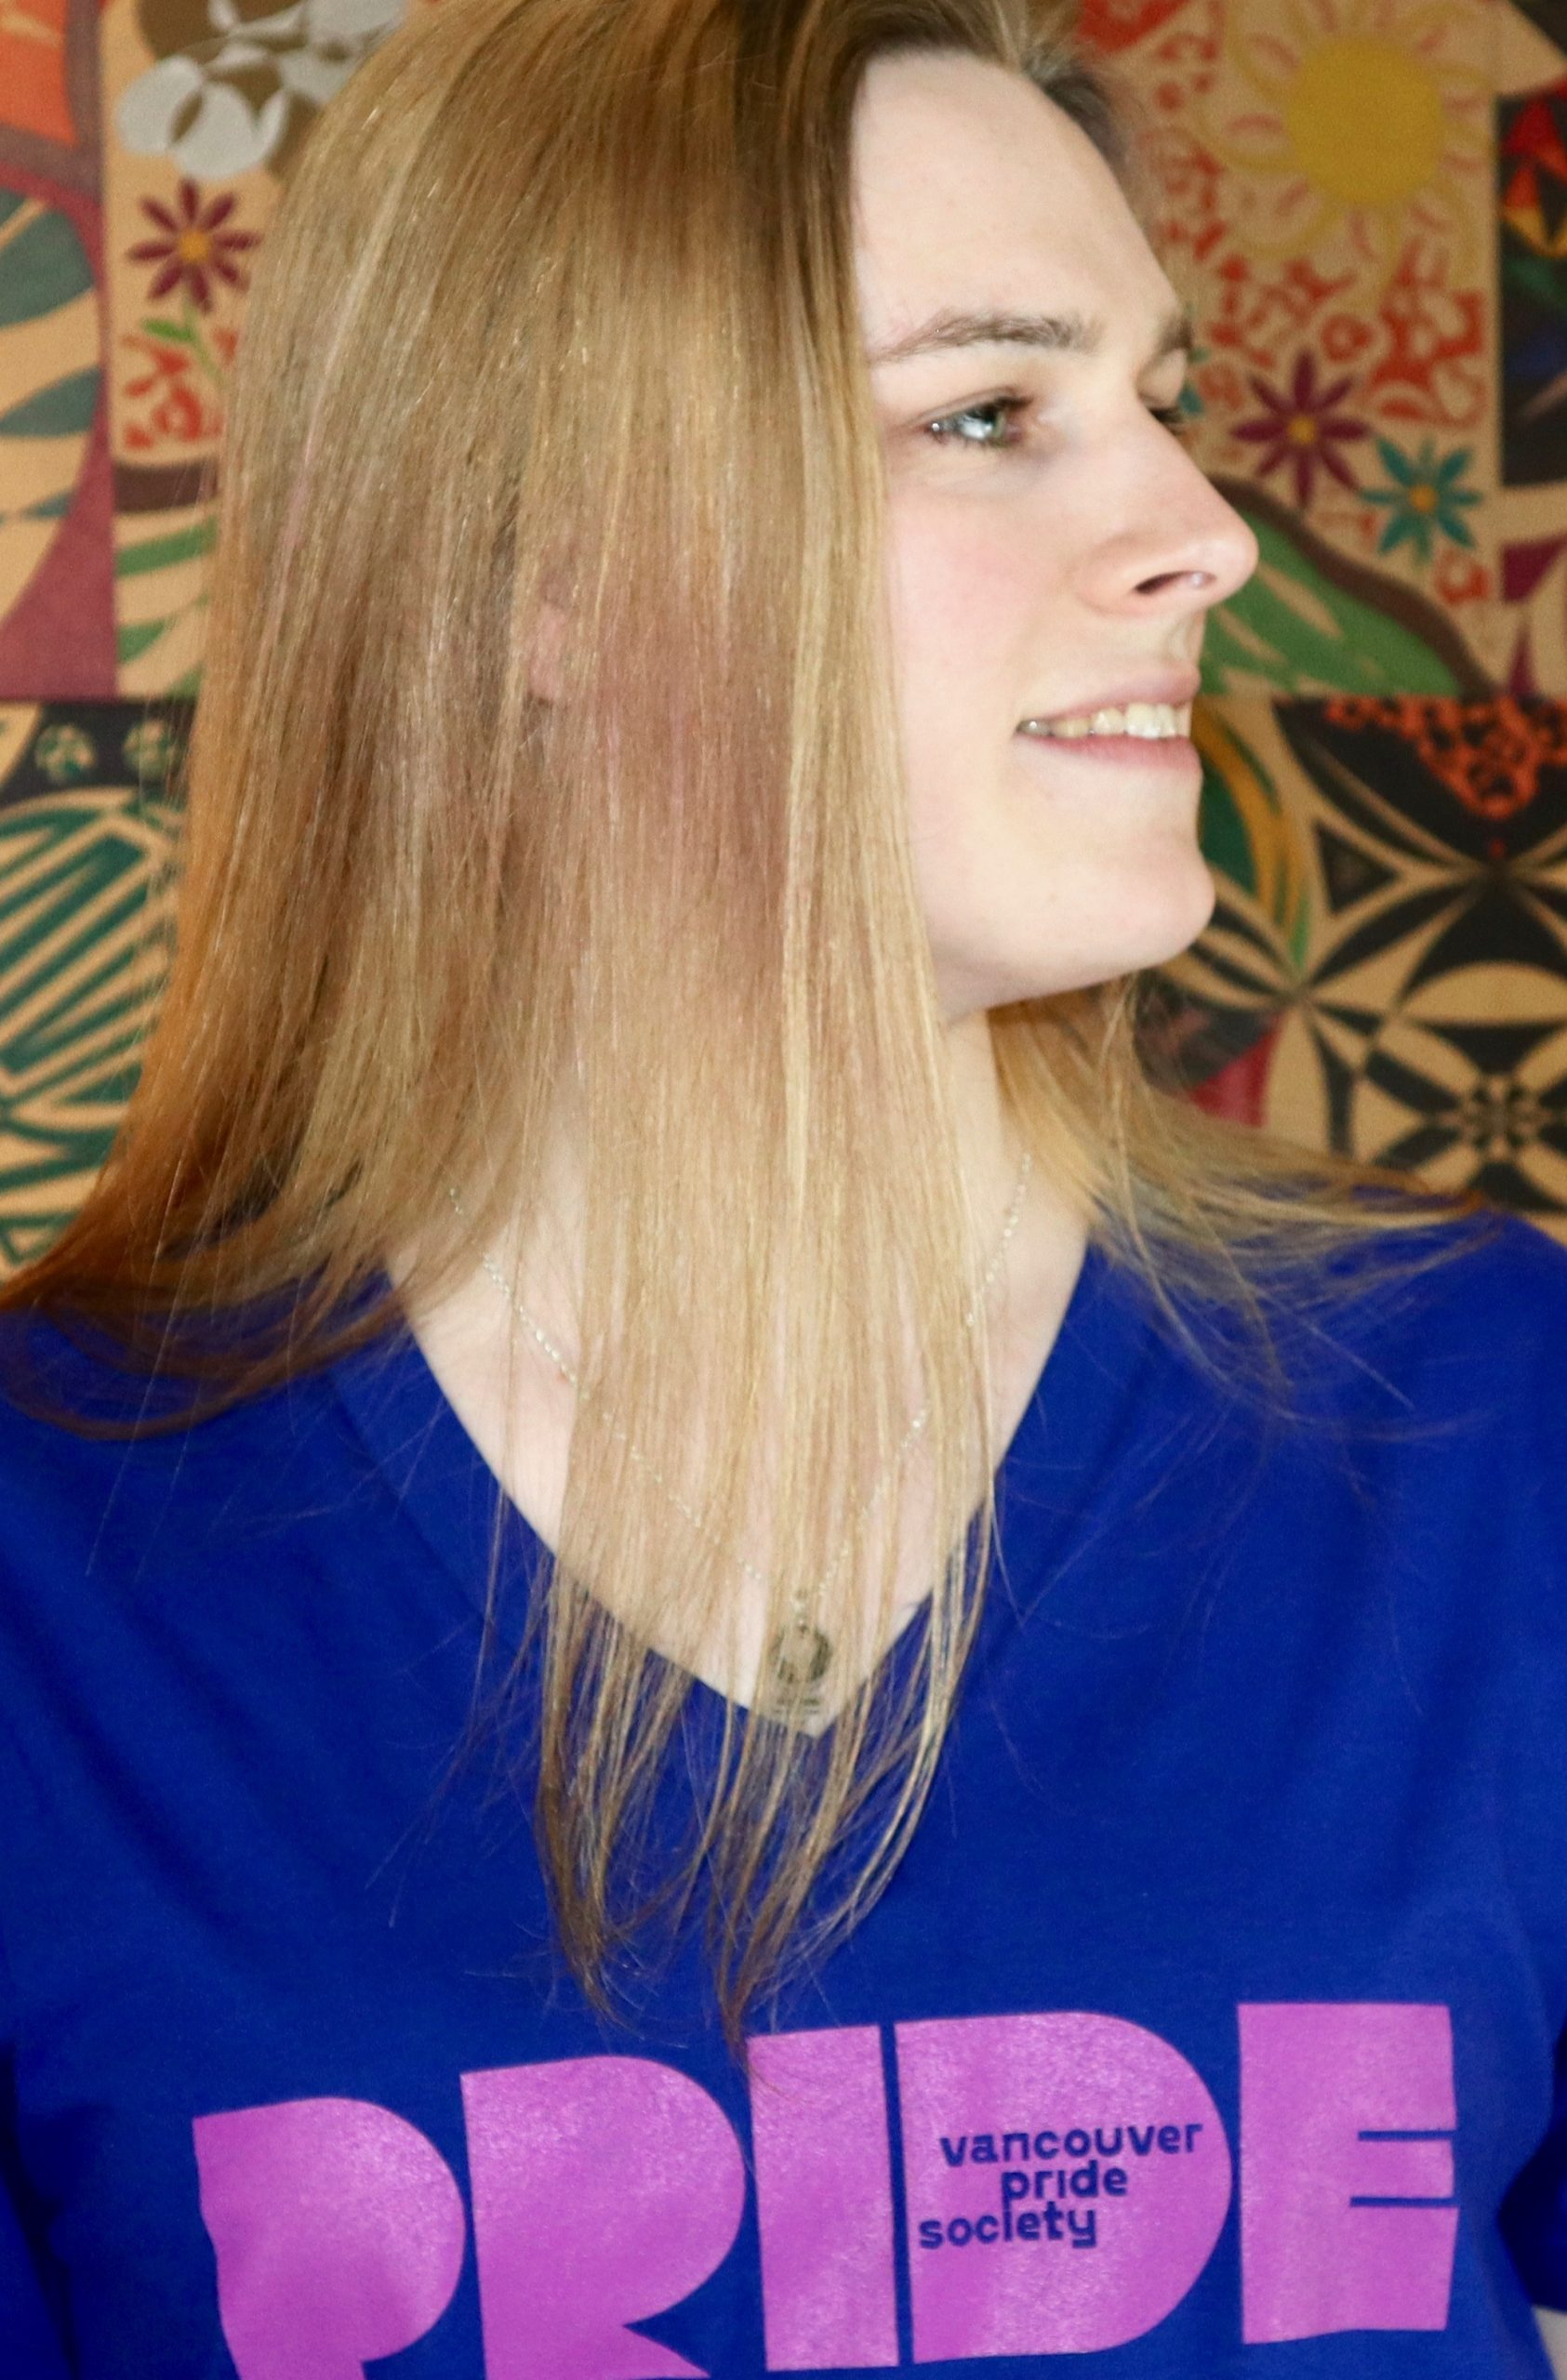 Nicola stands against a multi-coloured and patterned background and looks to her left. She has long blonde hair, and is wearing a dark blue t-shirt with a light purple Pride logo on it